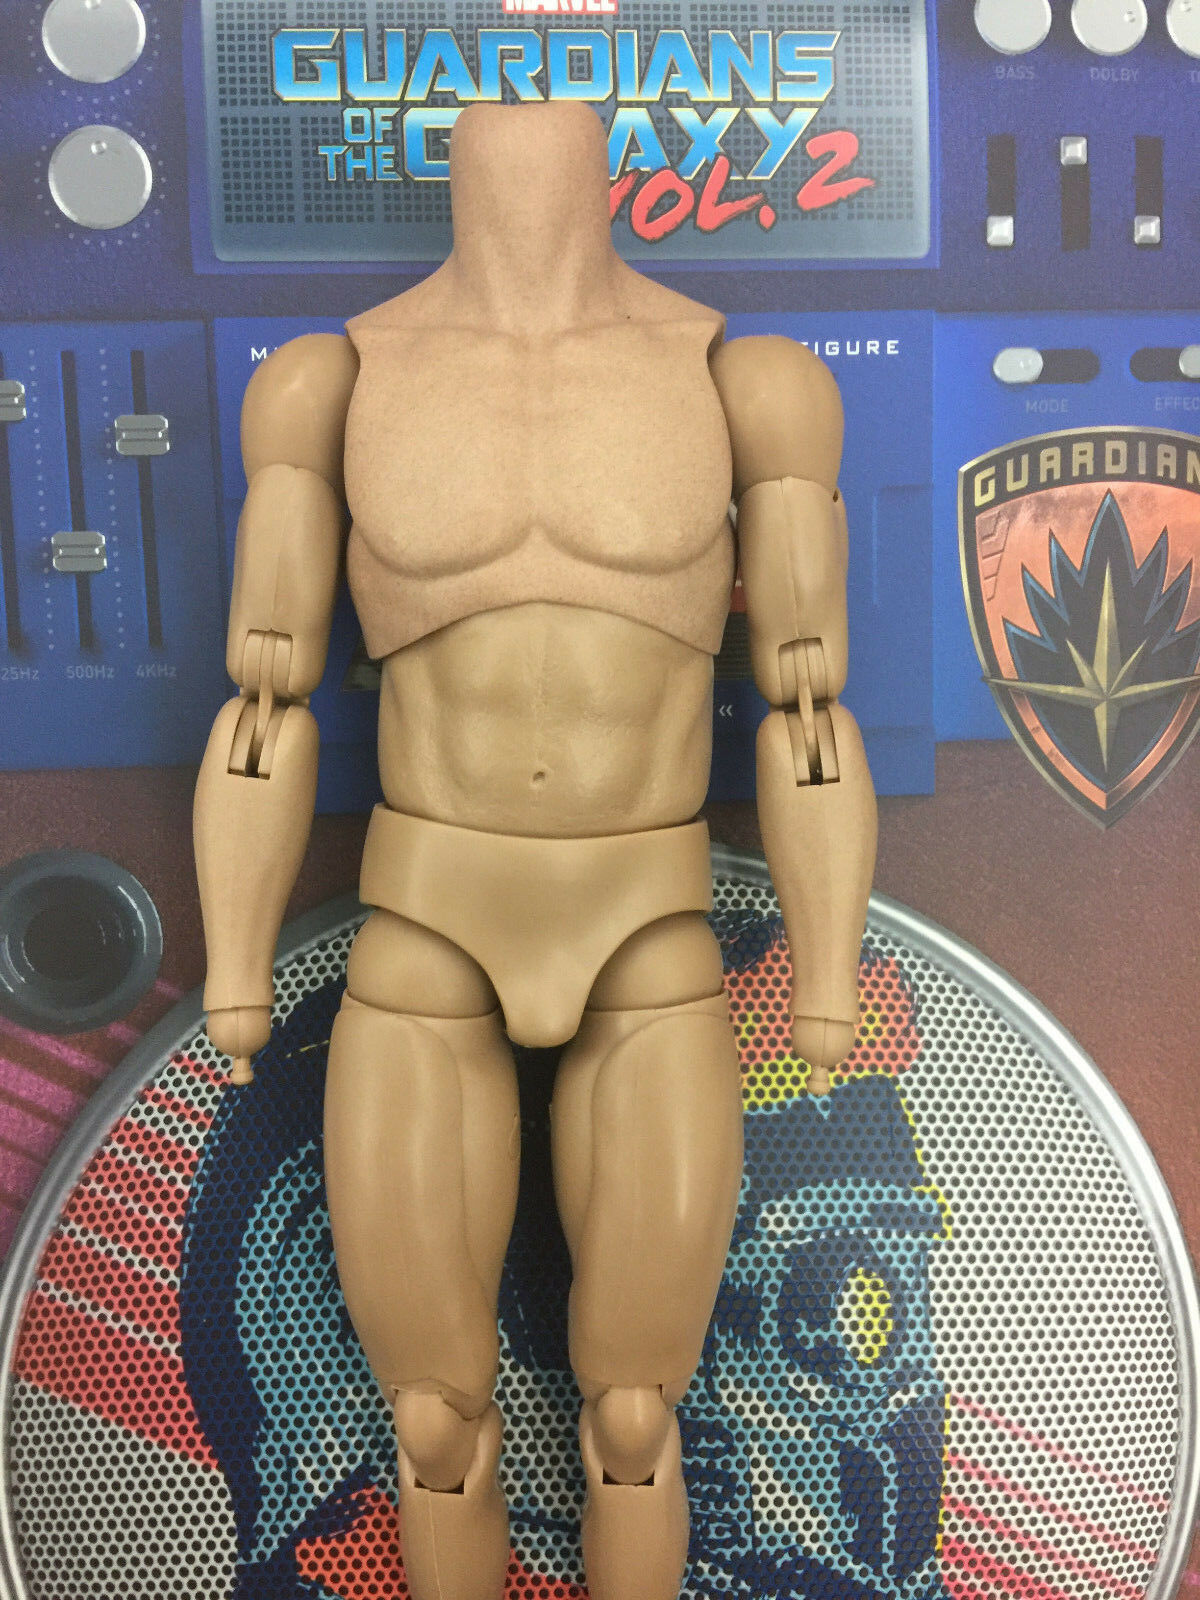 Hot Toys Galaxy des gardiens STAR LORD Deluxe MMS421-échelle 1 6 nude body